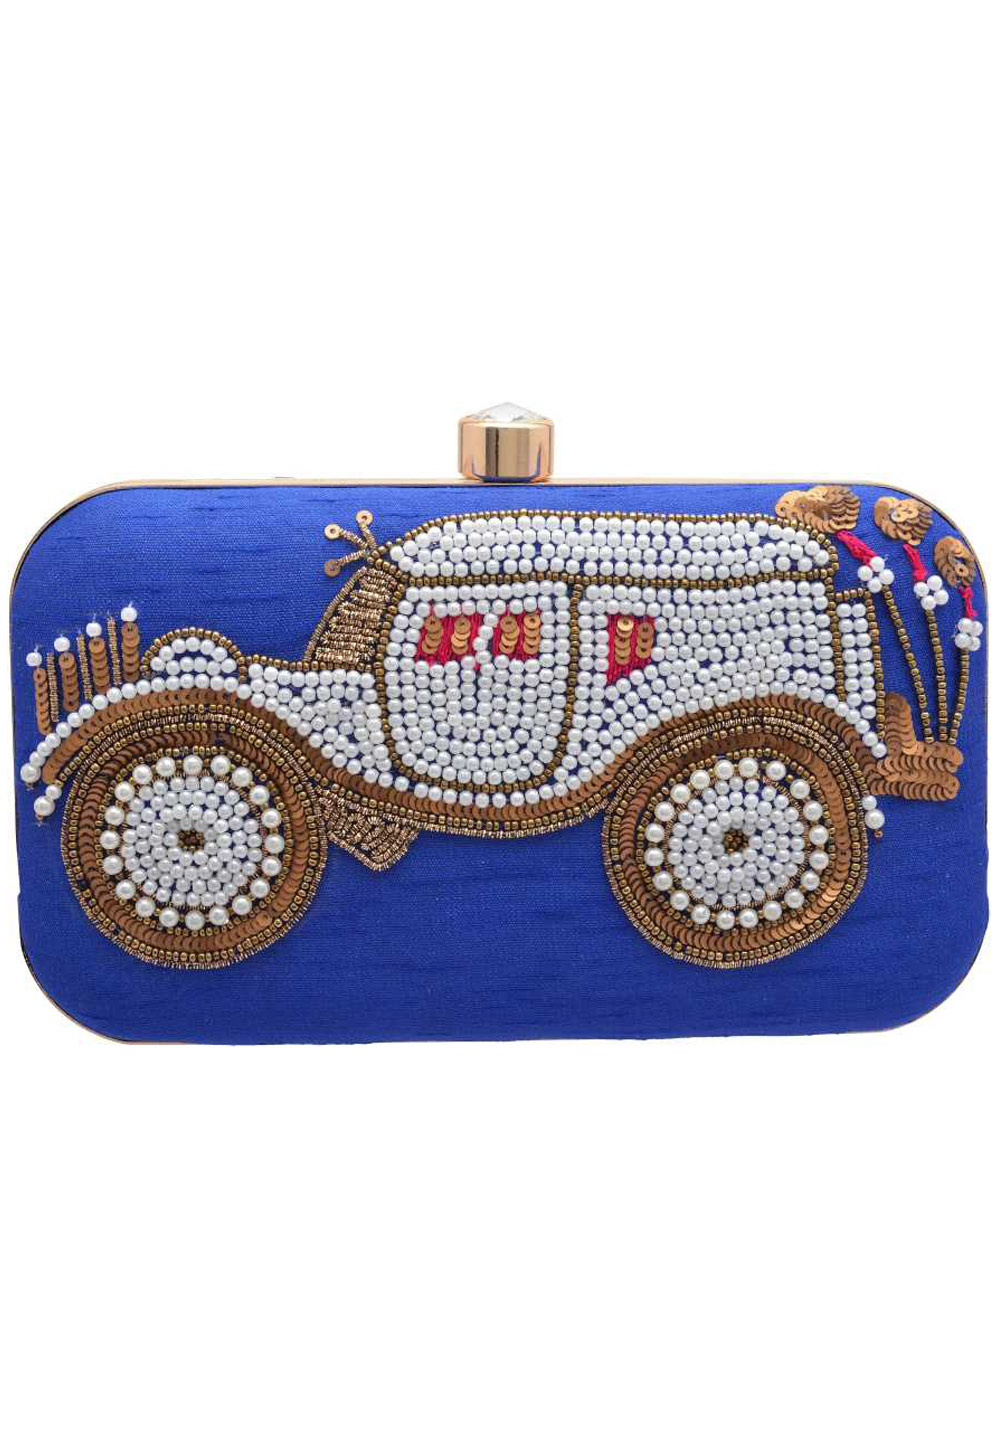 Blue Synthetic Embroidered Clutch 176770